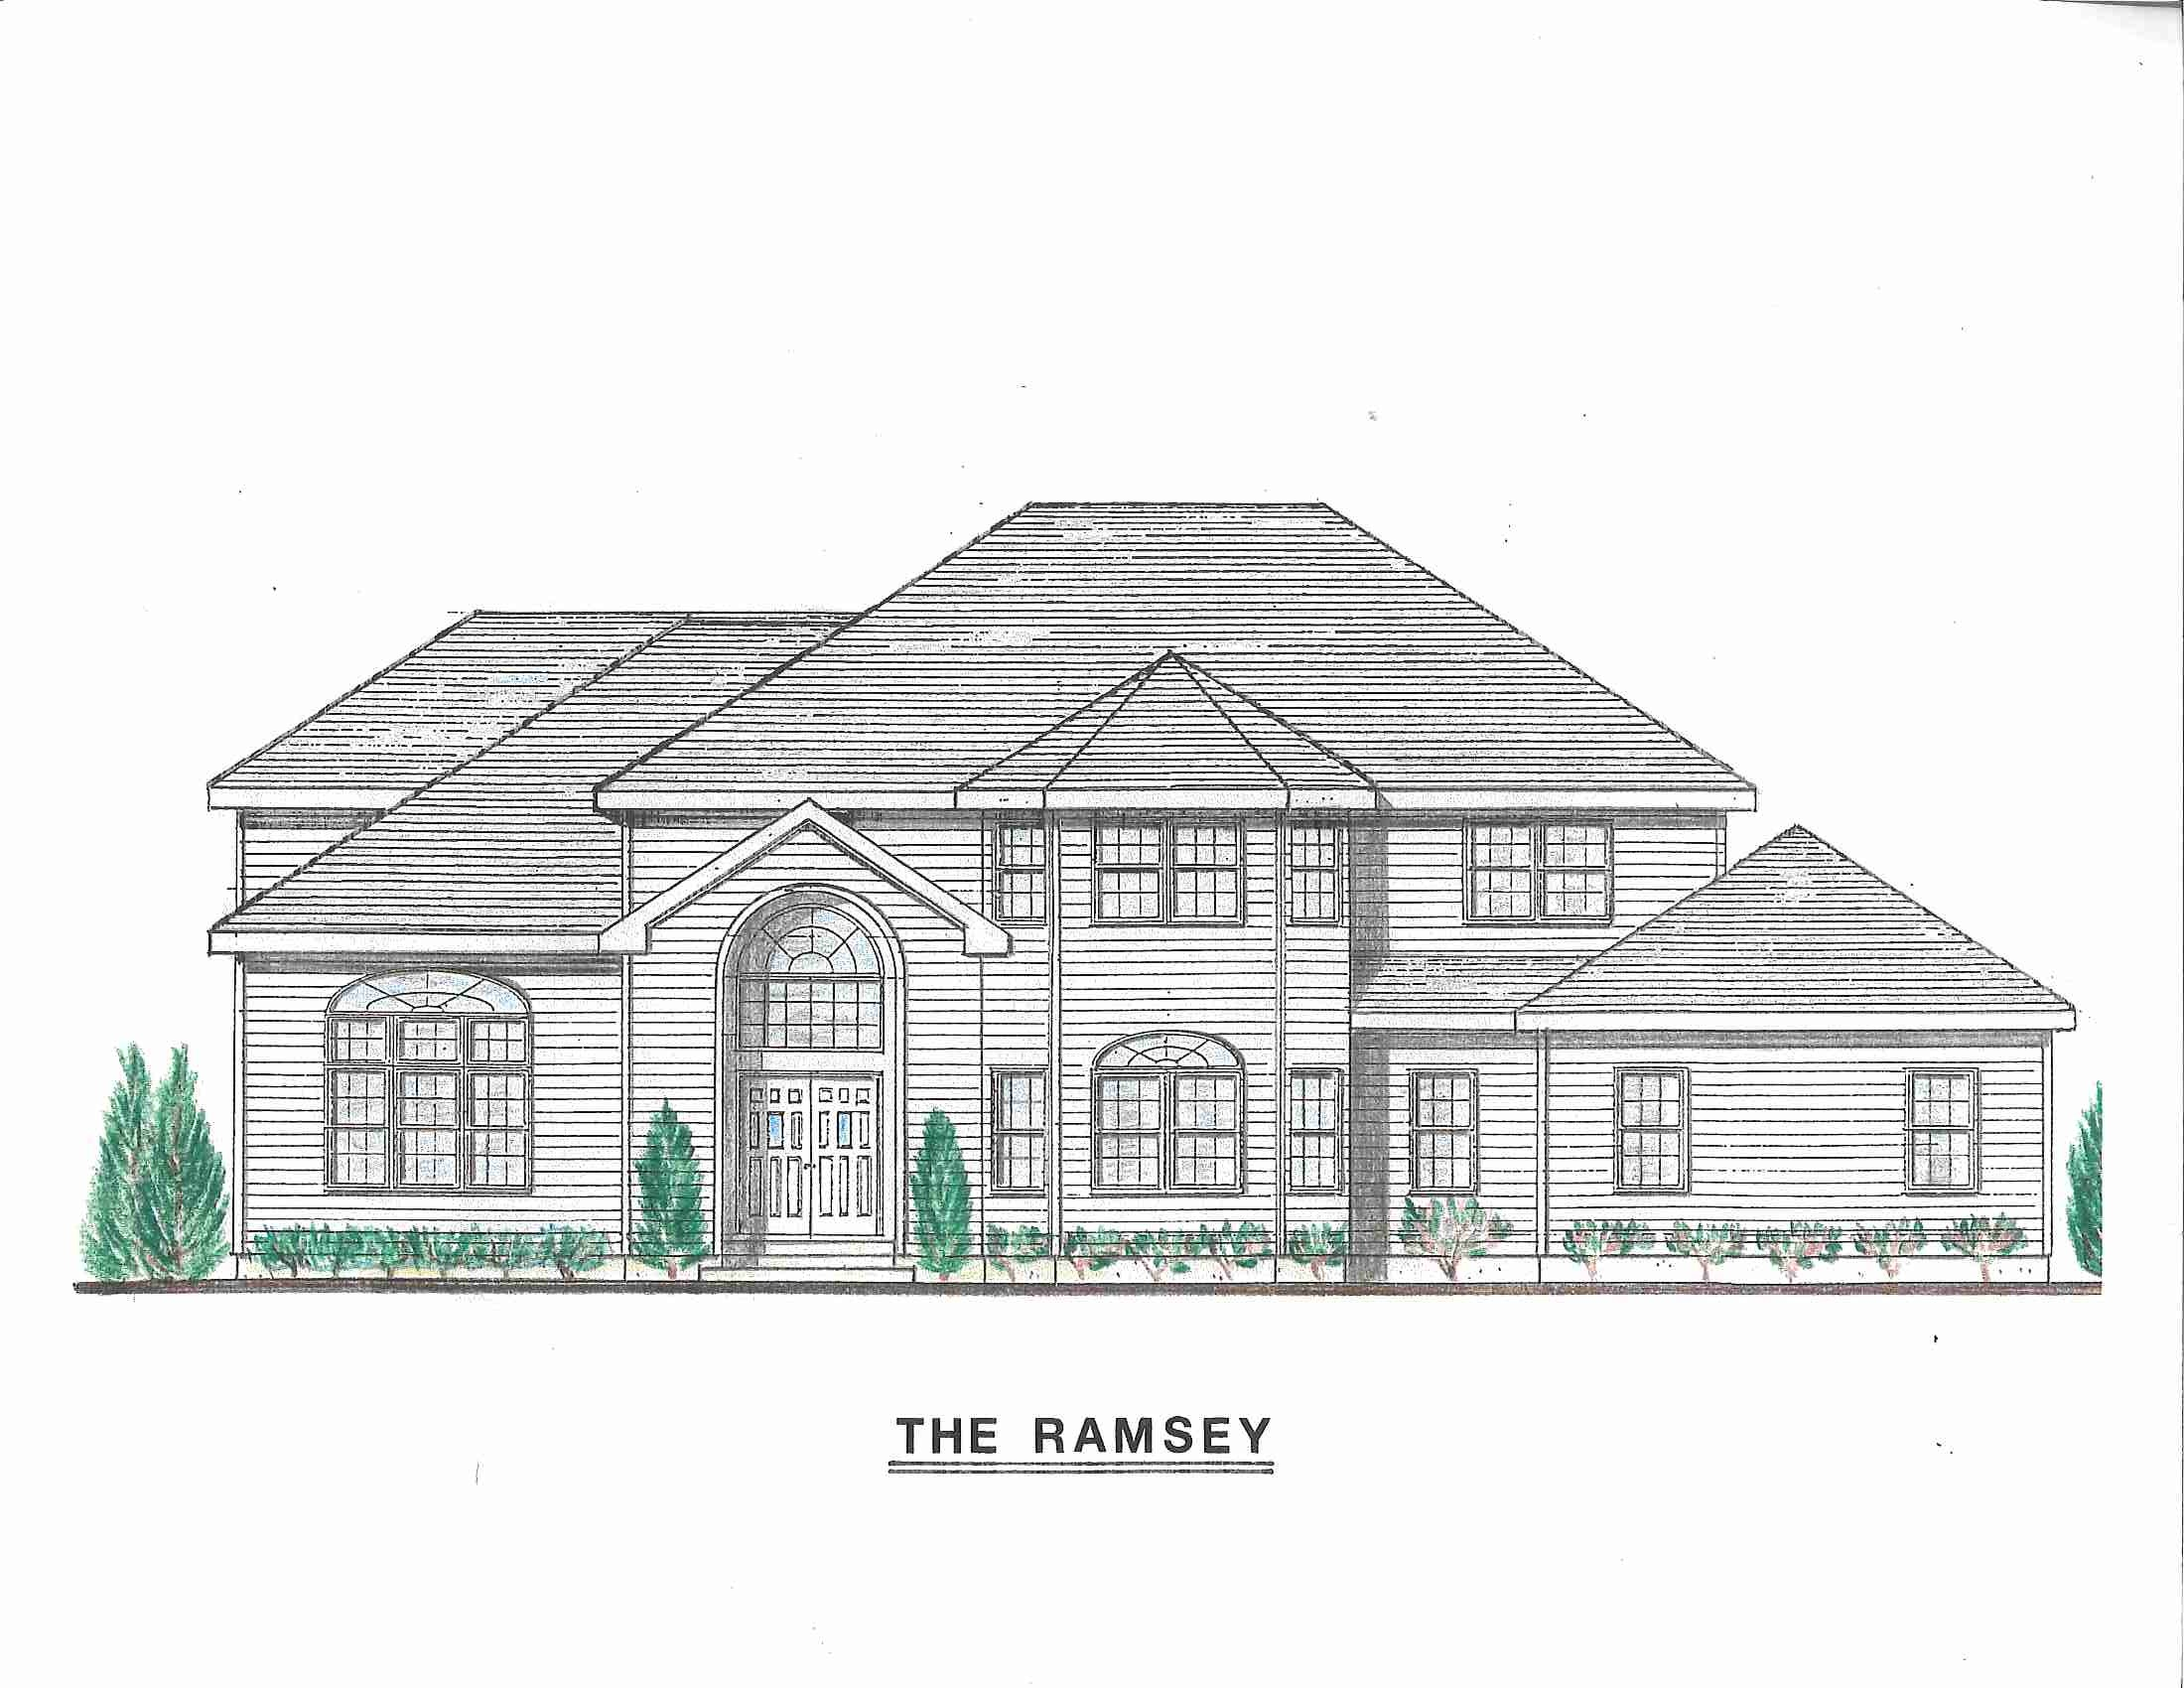 Single Family Home for Sale at New Construction 8 Timothy Ln St. James, New York, 11780 United States